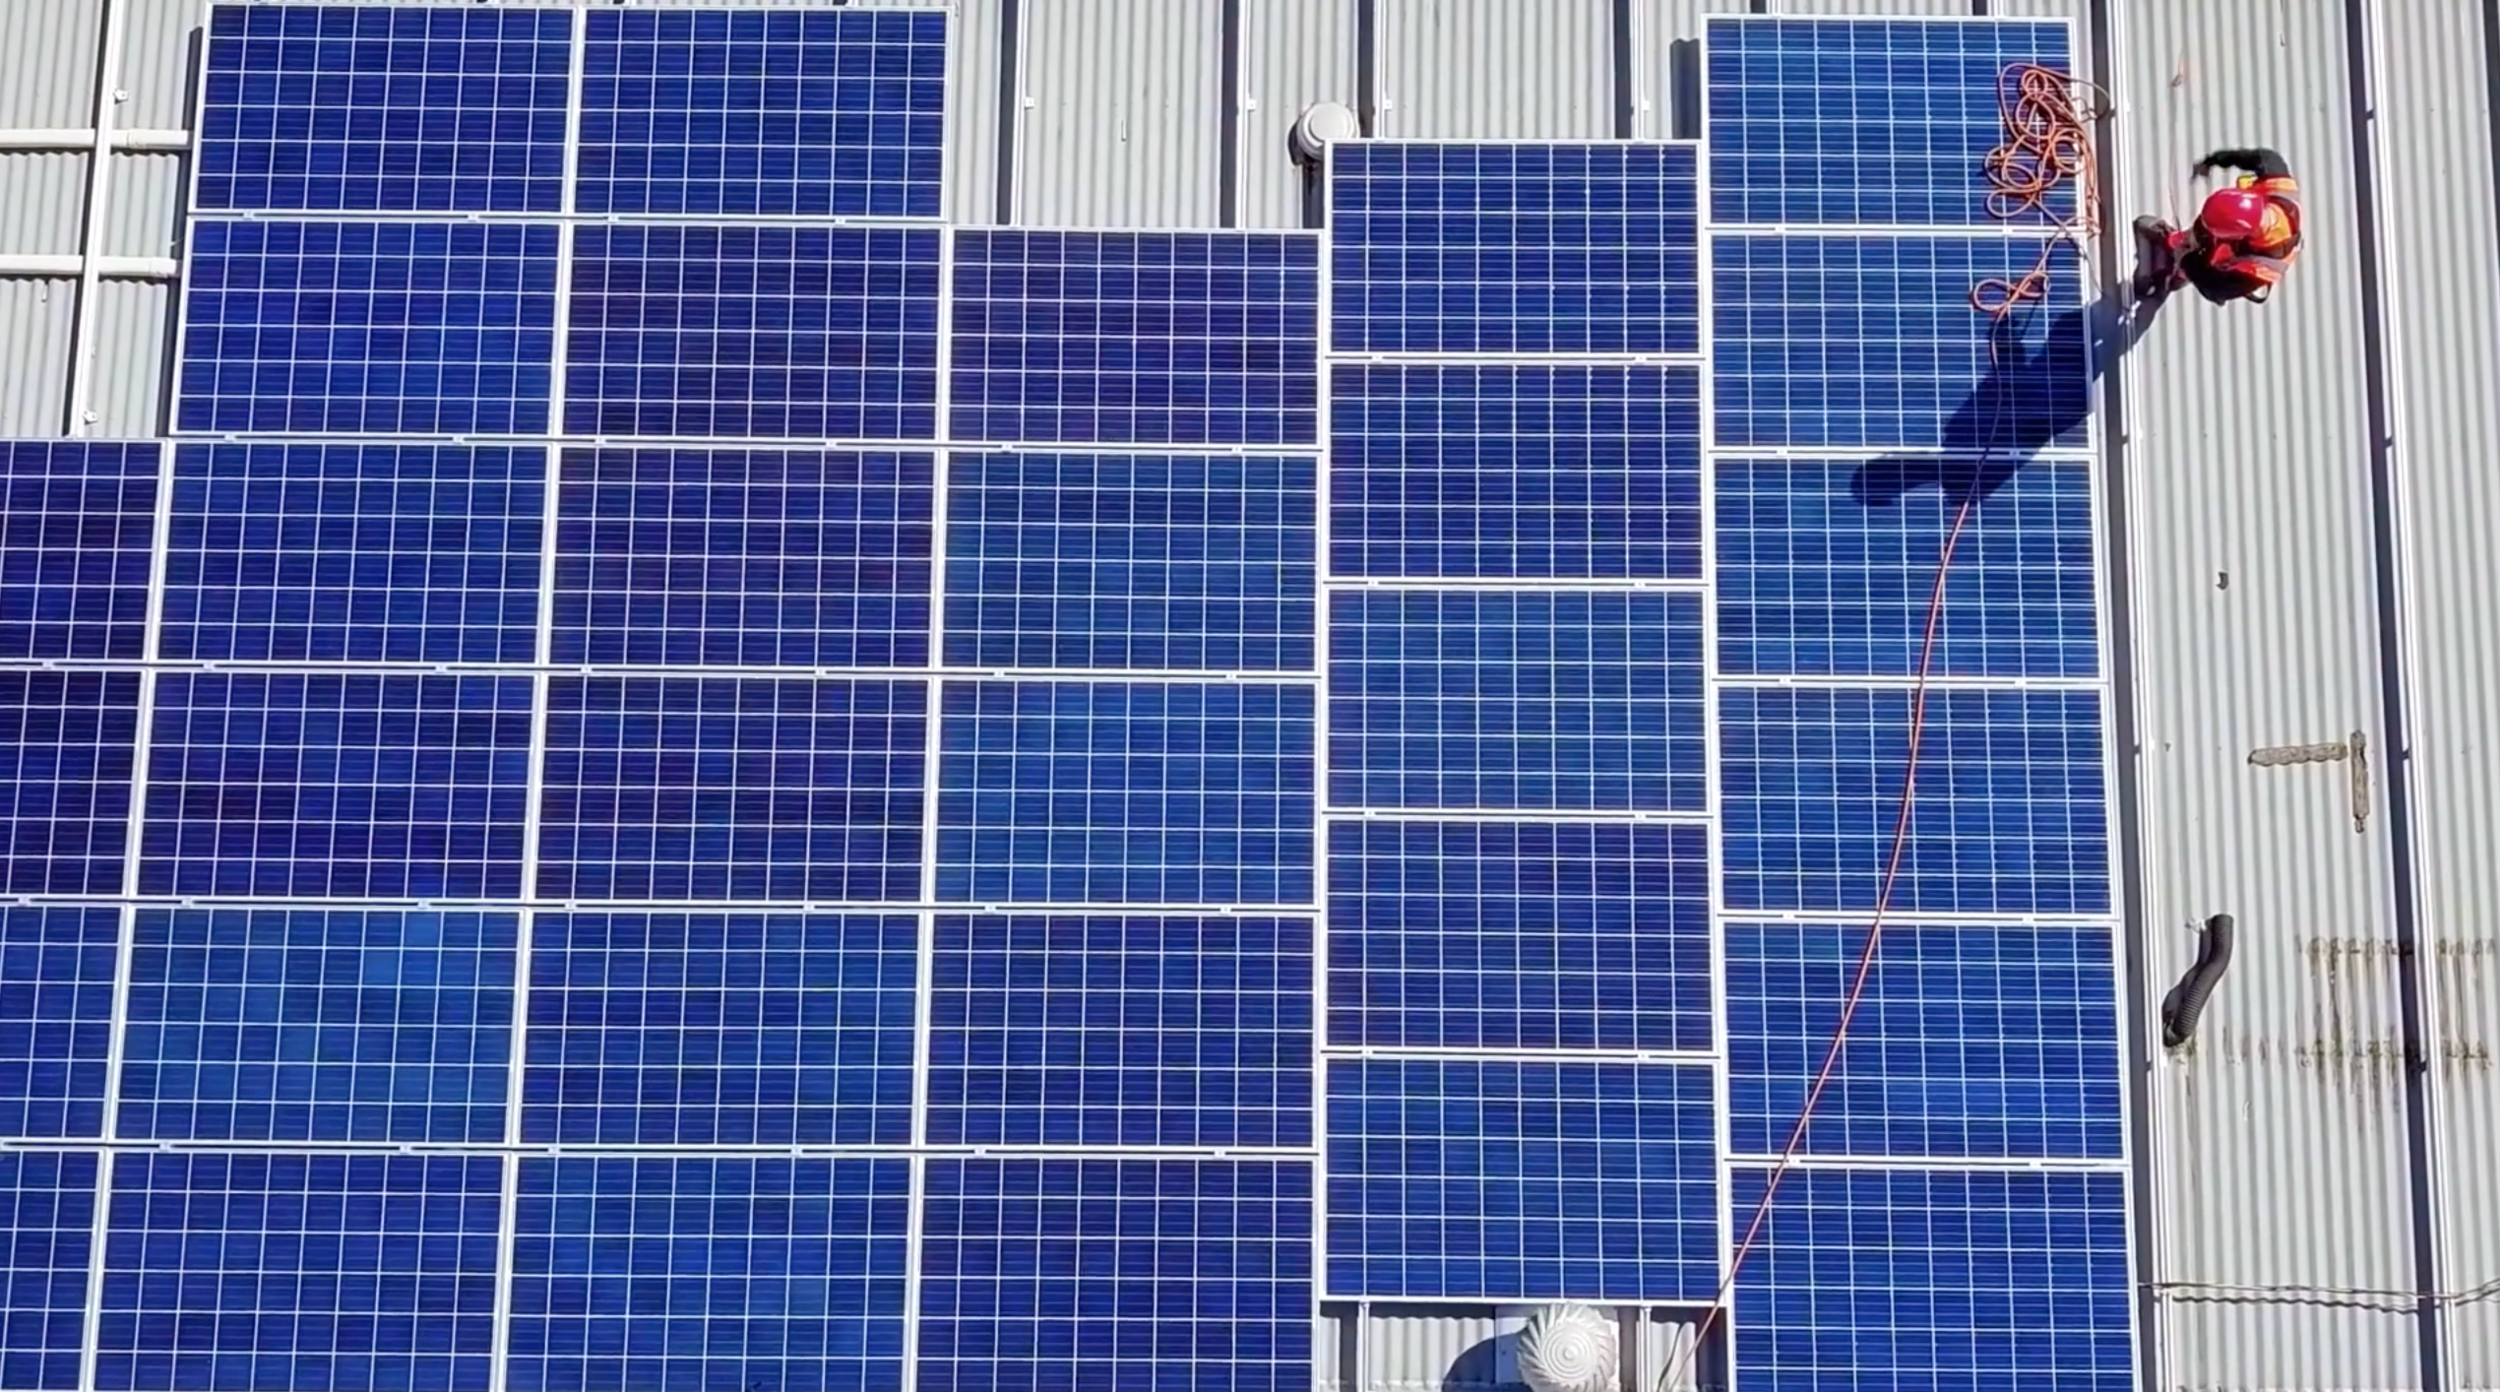 Sunergise solar PV system Auckland City